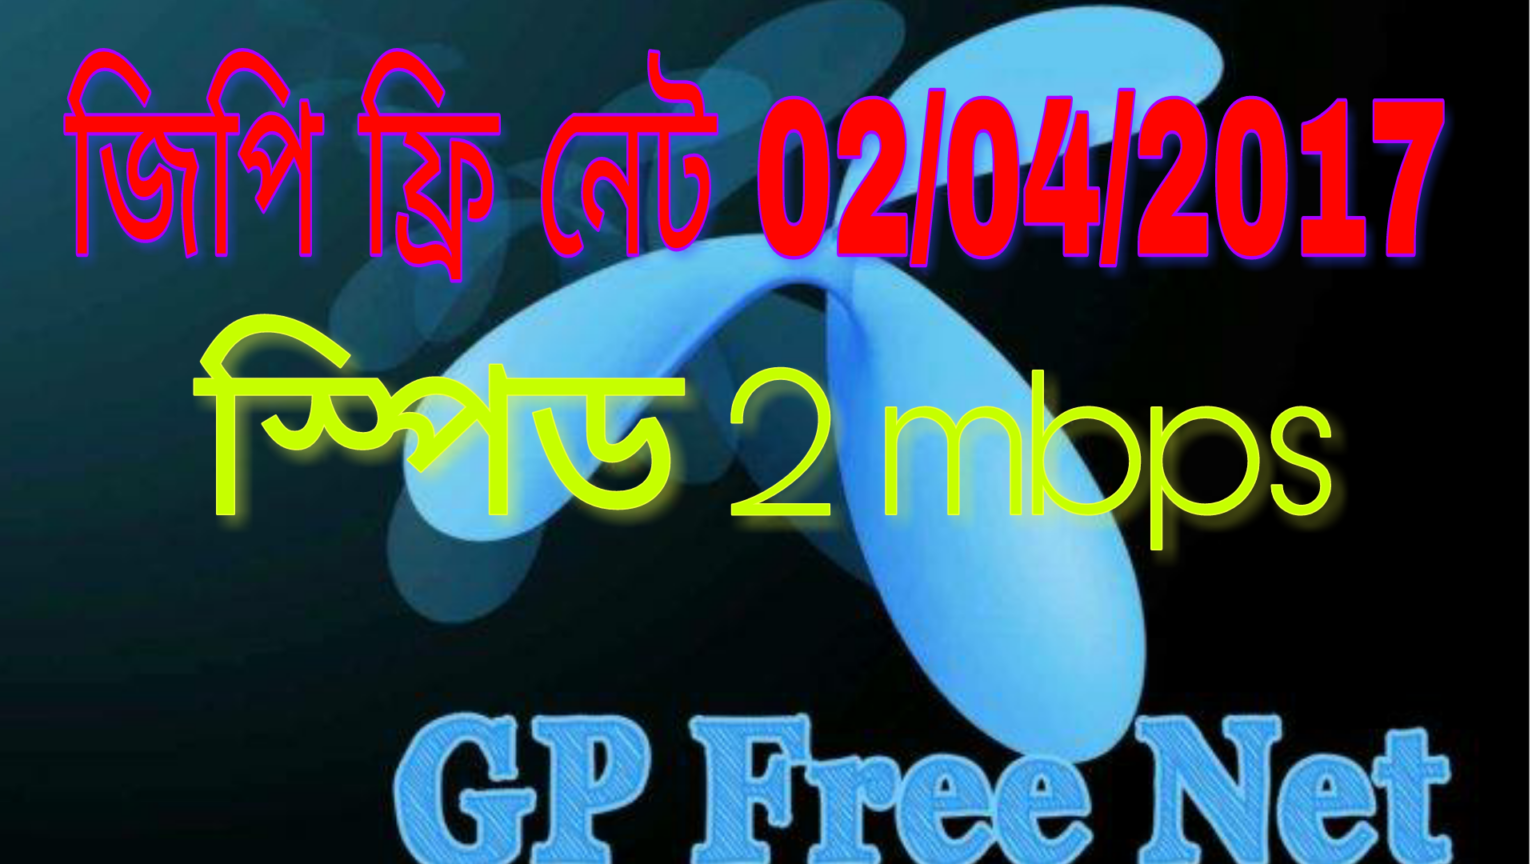 [Free Net][Unlimited Download]100% working Gp Free Net 1 mbps download speed – By Shahin